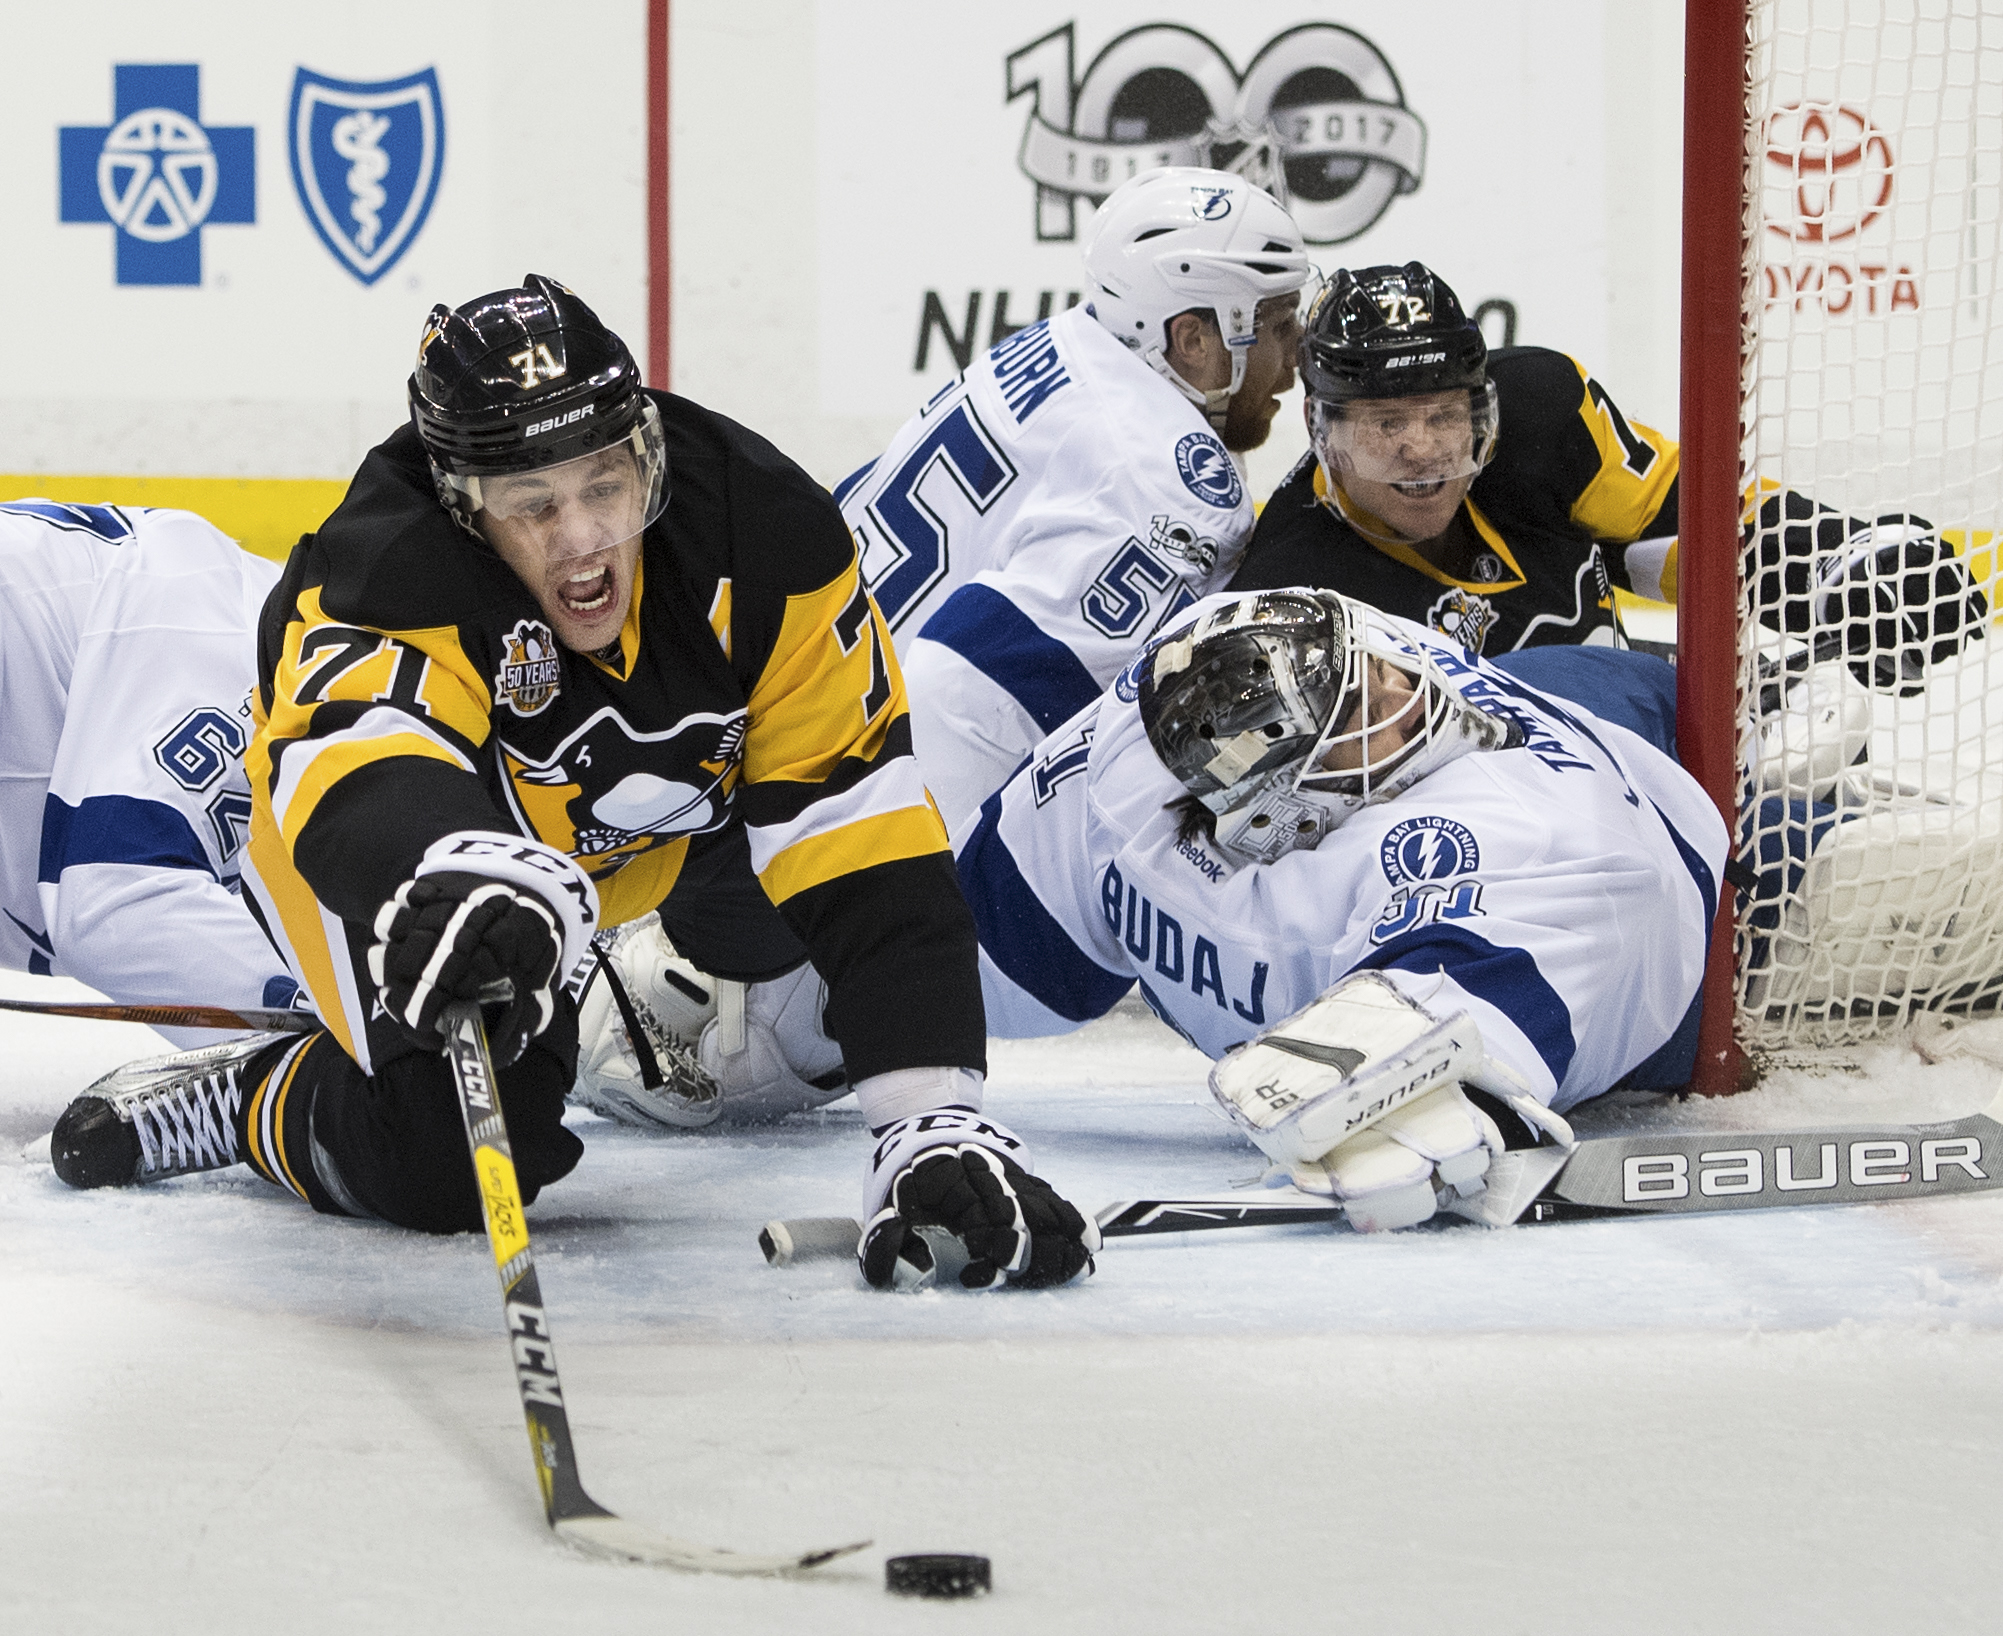 Pittsburgh Penguins center Evgeni Malkin (71) reaches for the puck against Tampa Bay Lightning goalie Peter Budaj (31) in the first period during an NHL game between the Pittsburgh Penguins and the Tampa Bay Lightning at PPG Paints Arena in Pittsburgh, Pa. on Friday March 03, 2017. The Penguins won 5-2. Malkin scored two goals in his 700th game. (Steph Chambers | Tribune-Review)